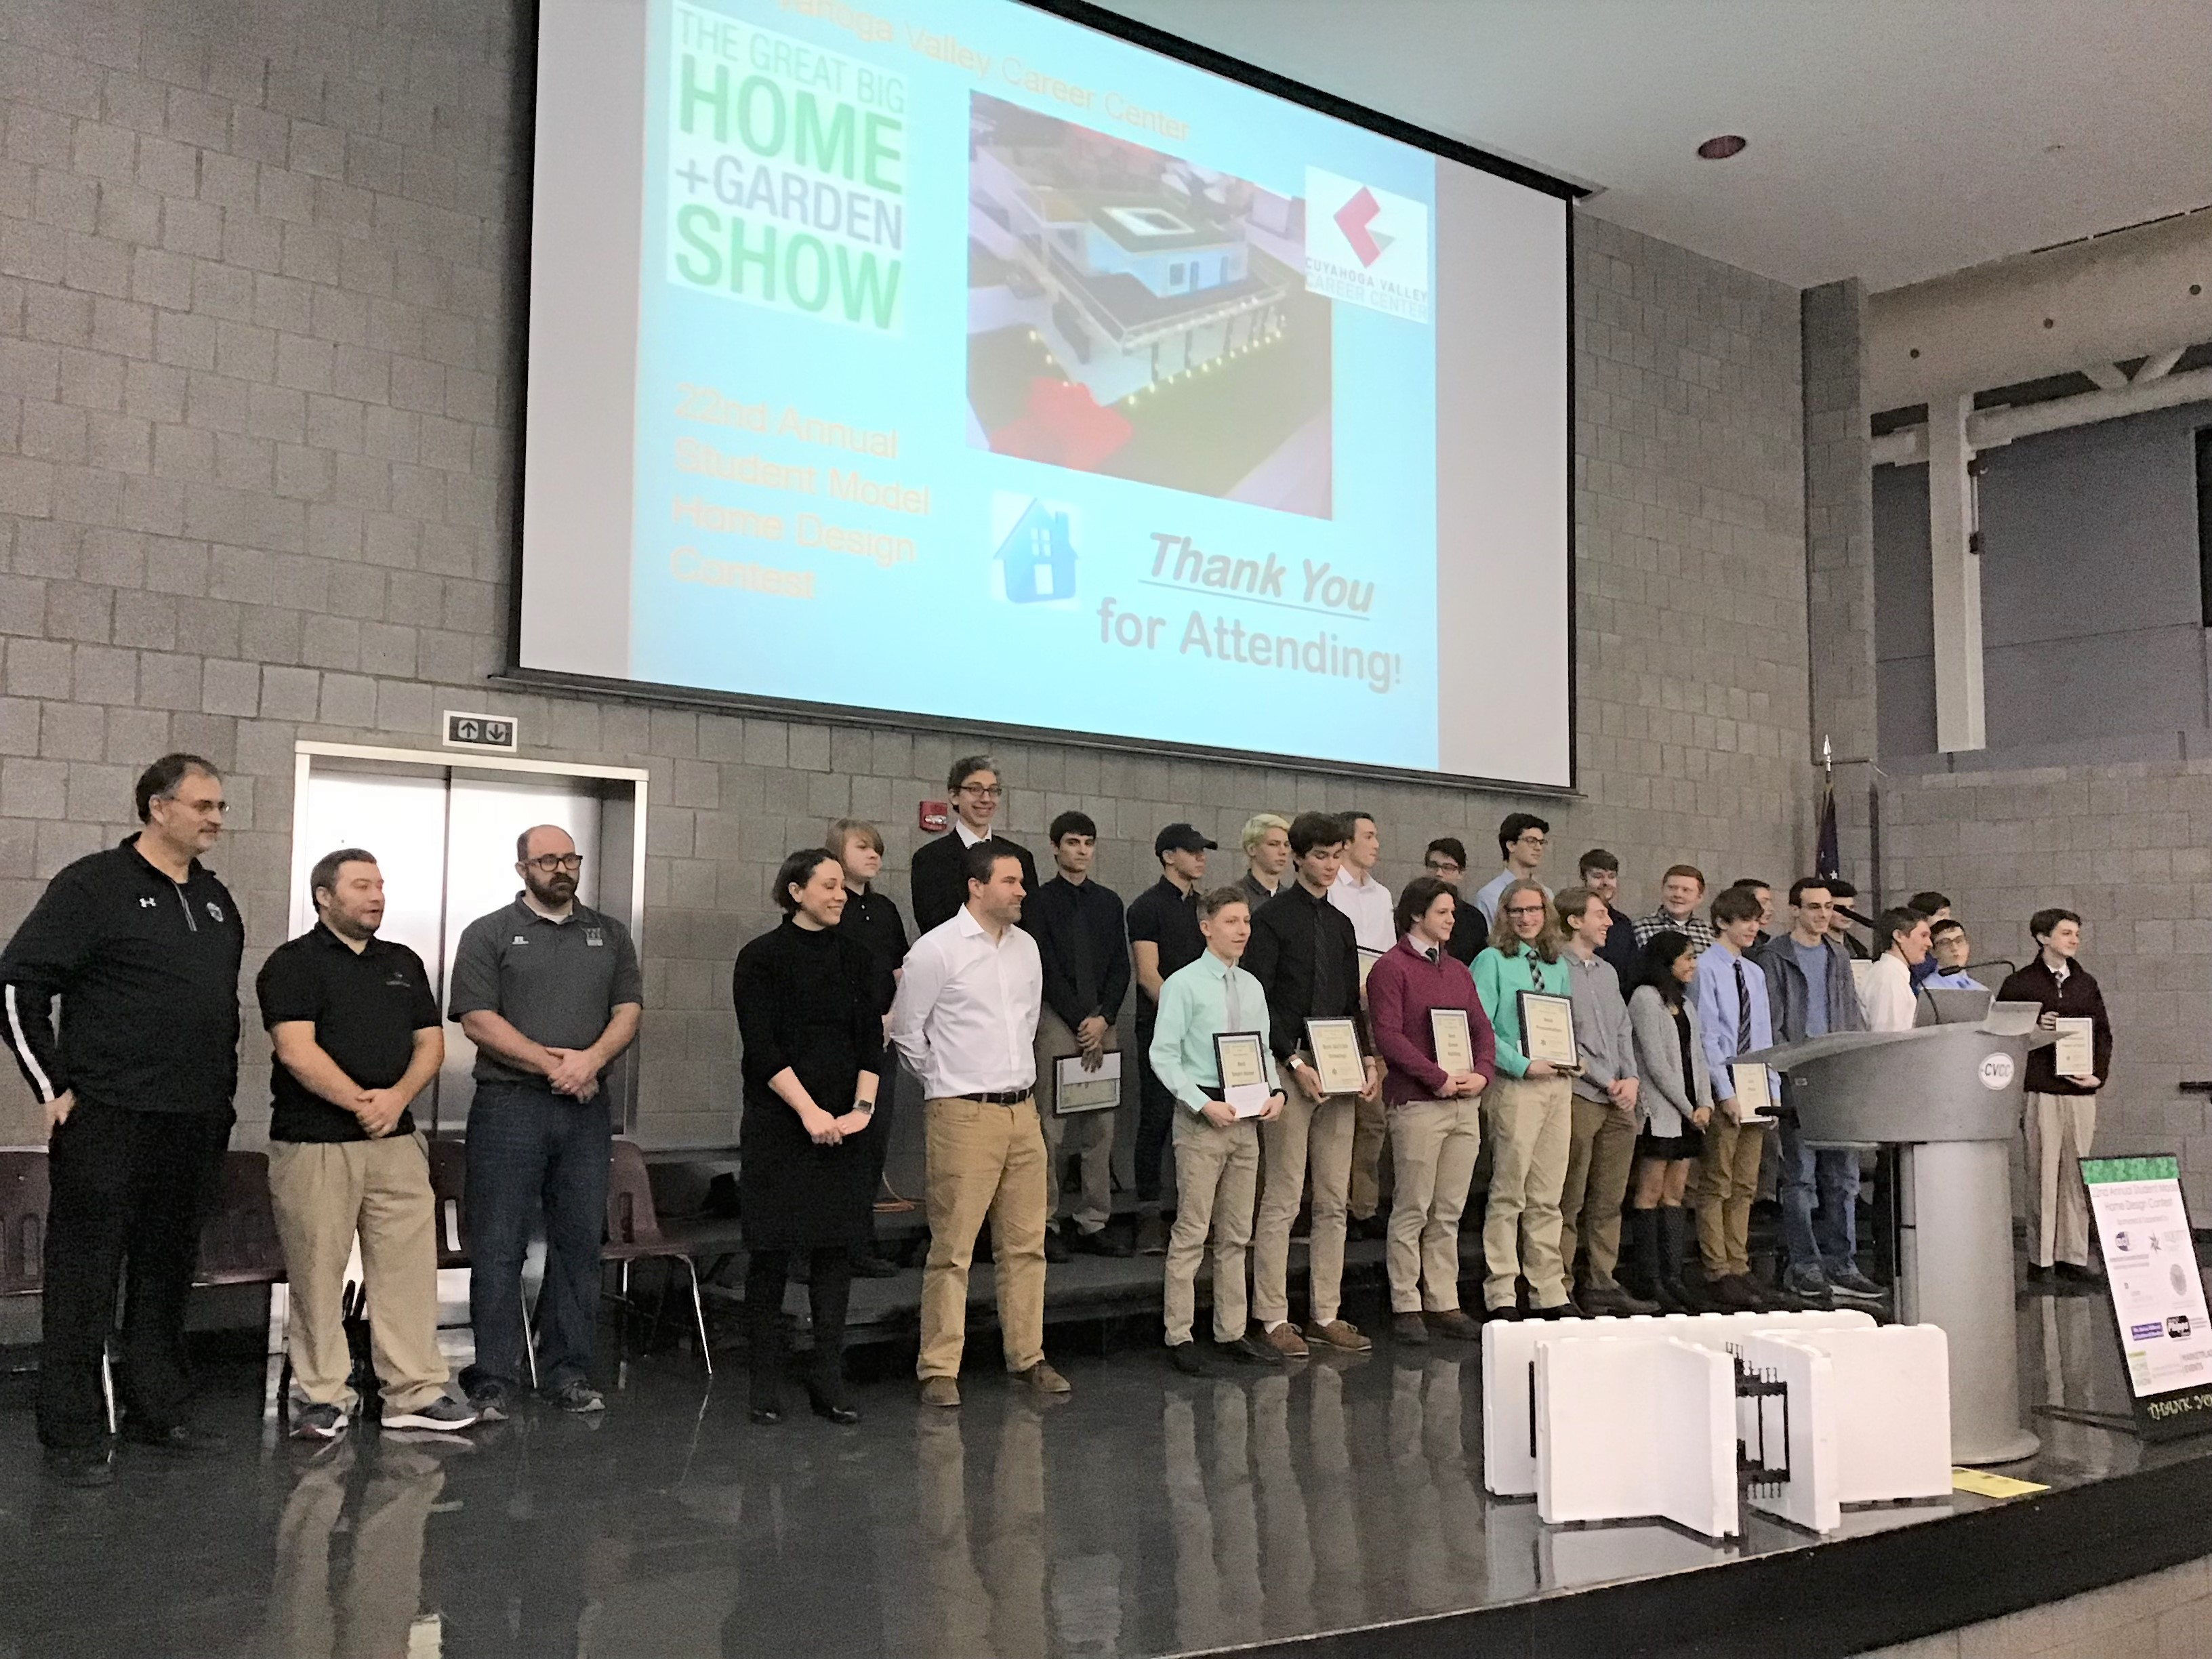 2019 contest - Top Ten finalists and presenters on stage at CVCC 1-19-19